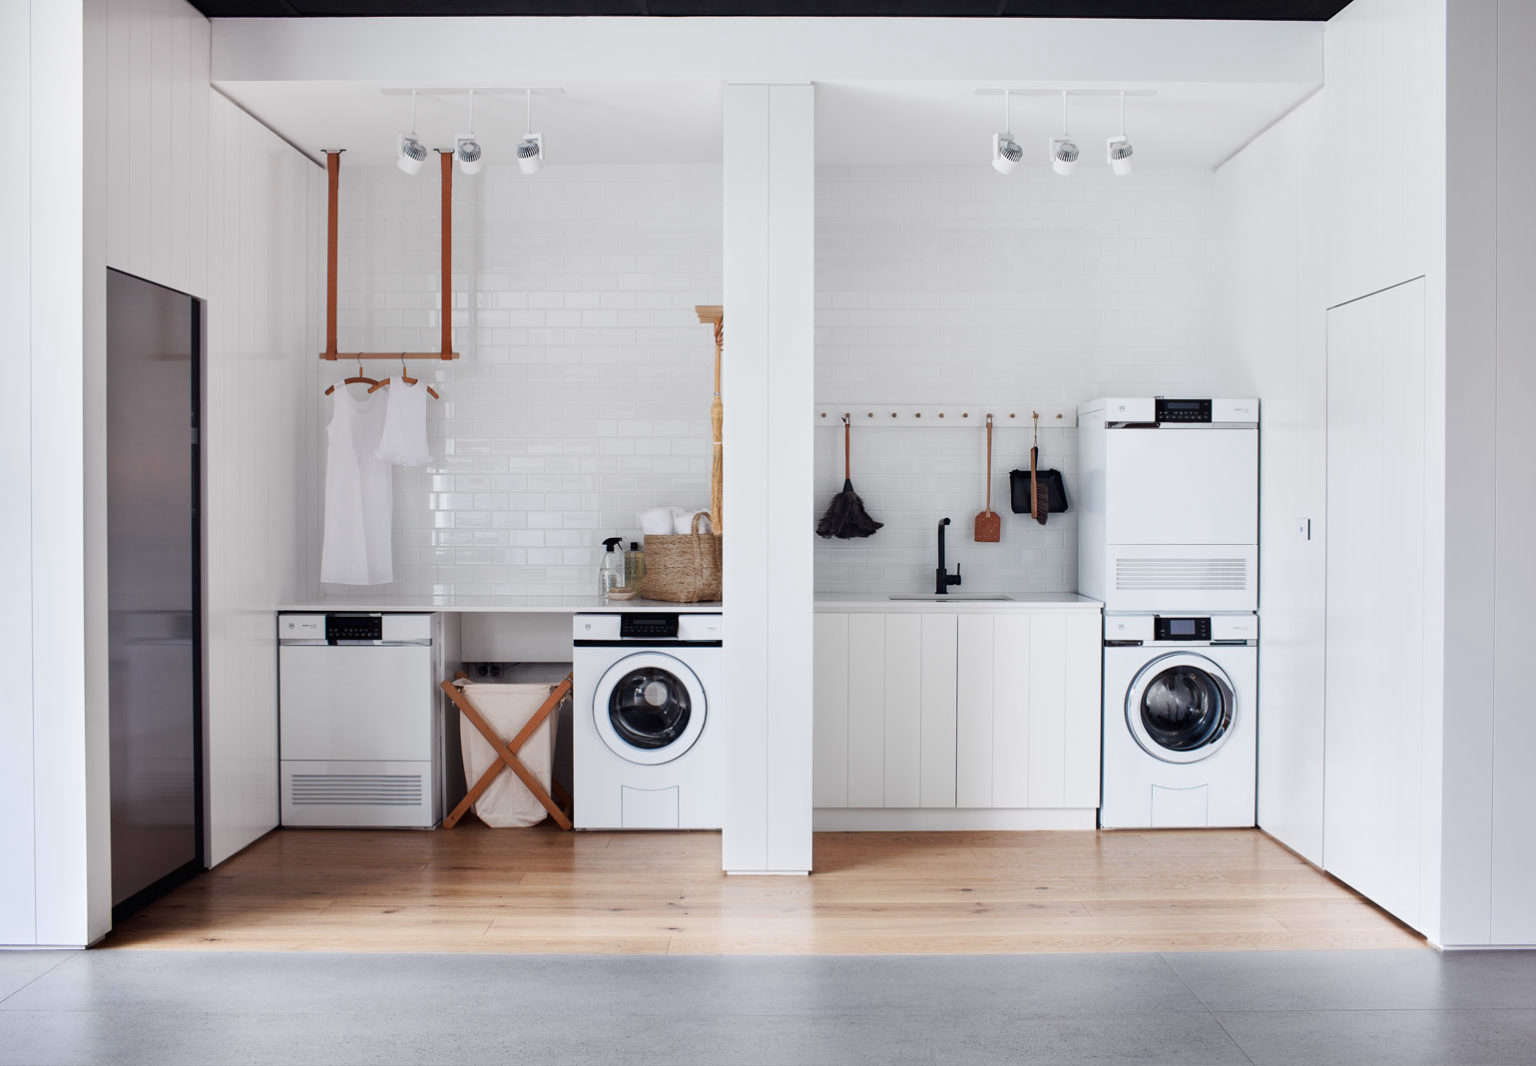 Attirant ... Appliance Company V Zug Was Designed By Whiting Architects To Resemble  A Domestic Setting; Here We Take A Look At Simple Storage Implements That  Keep It ...